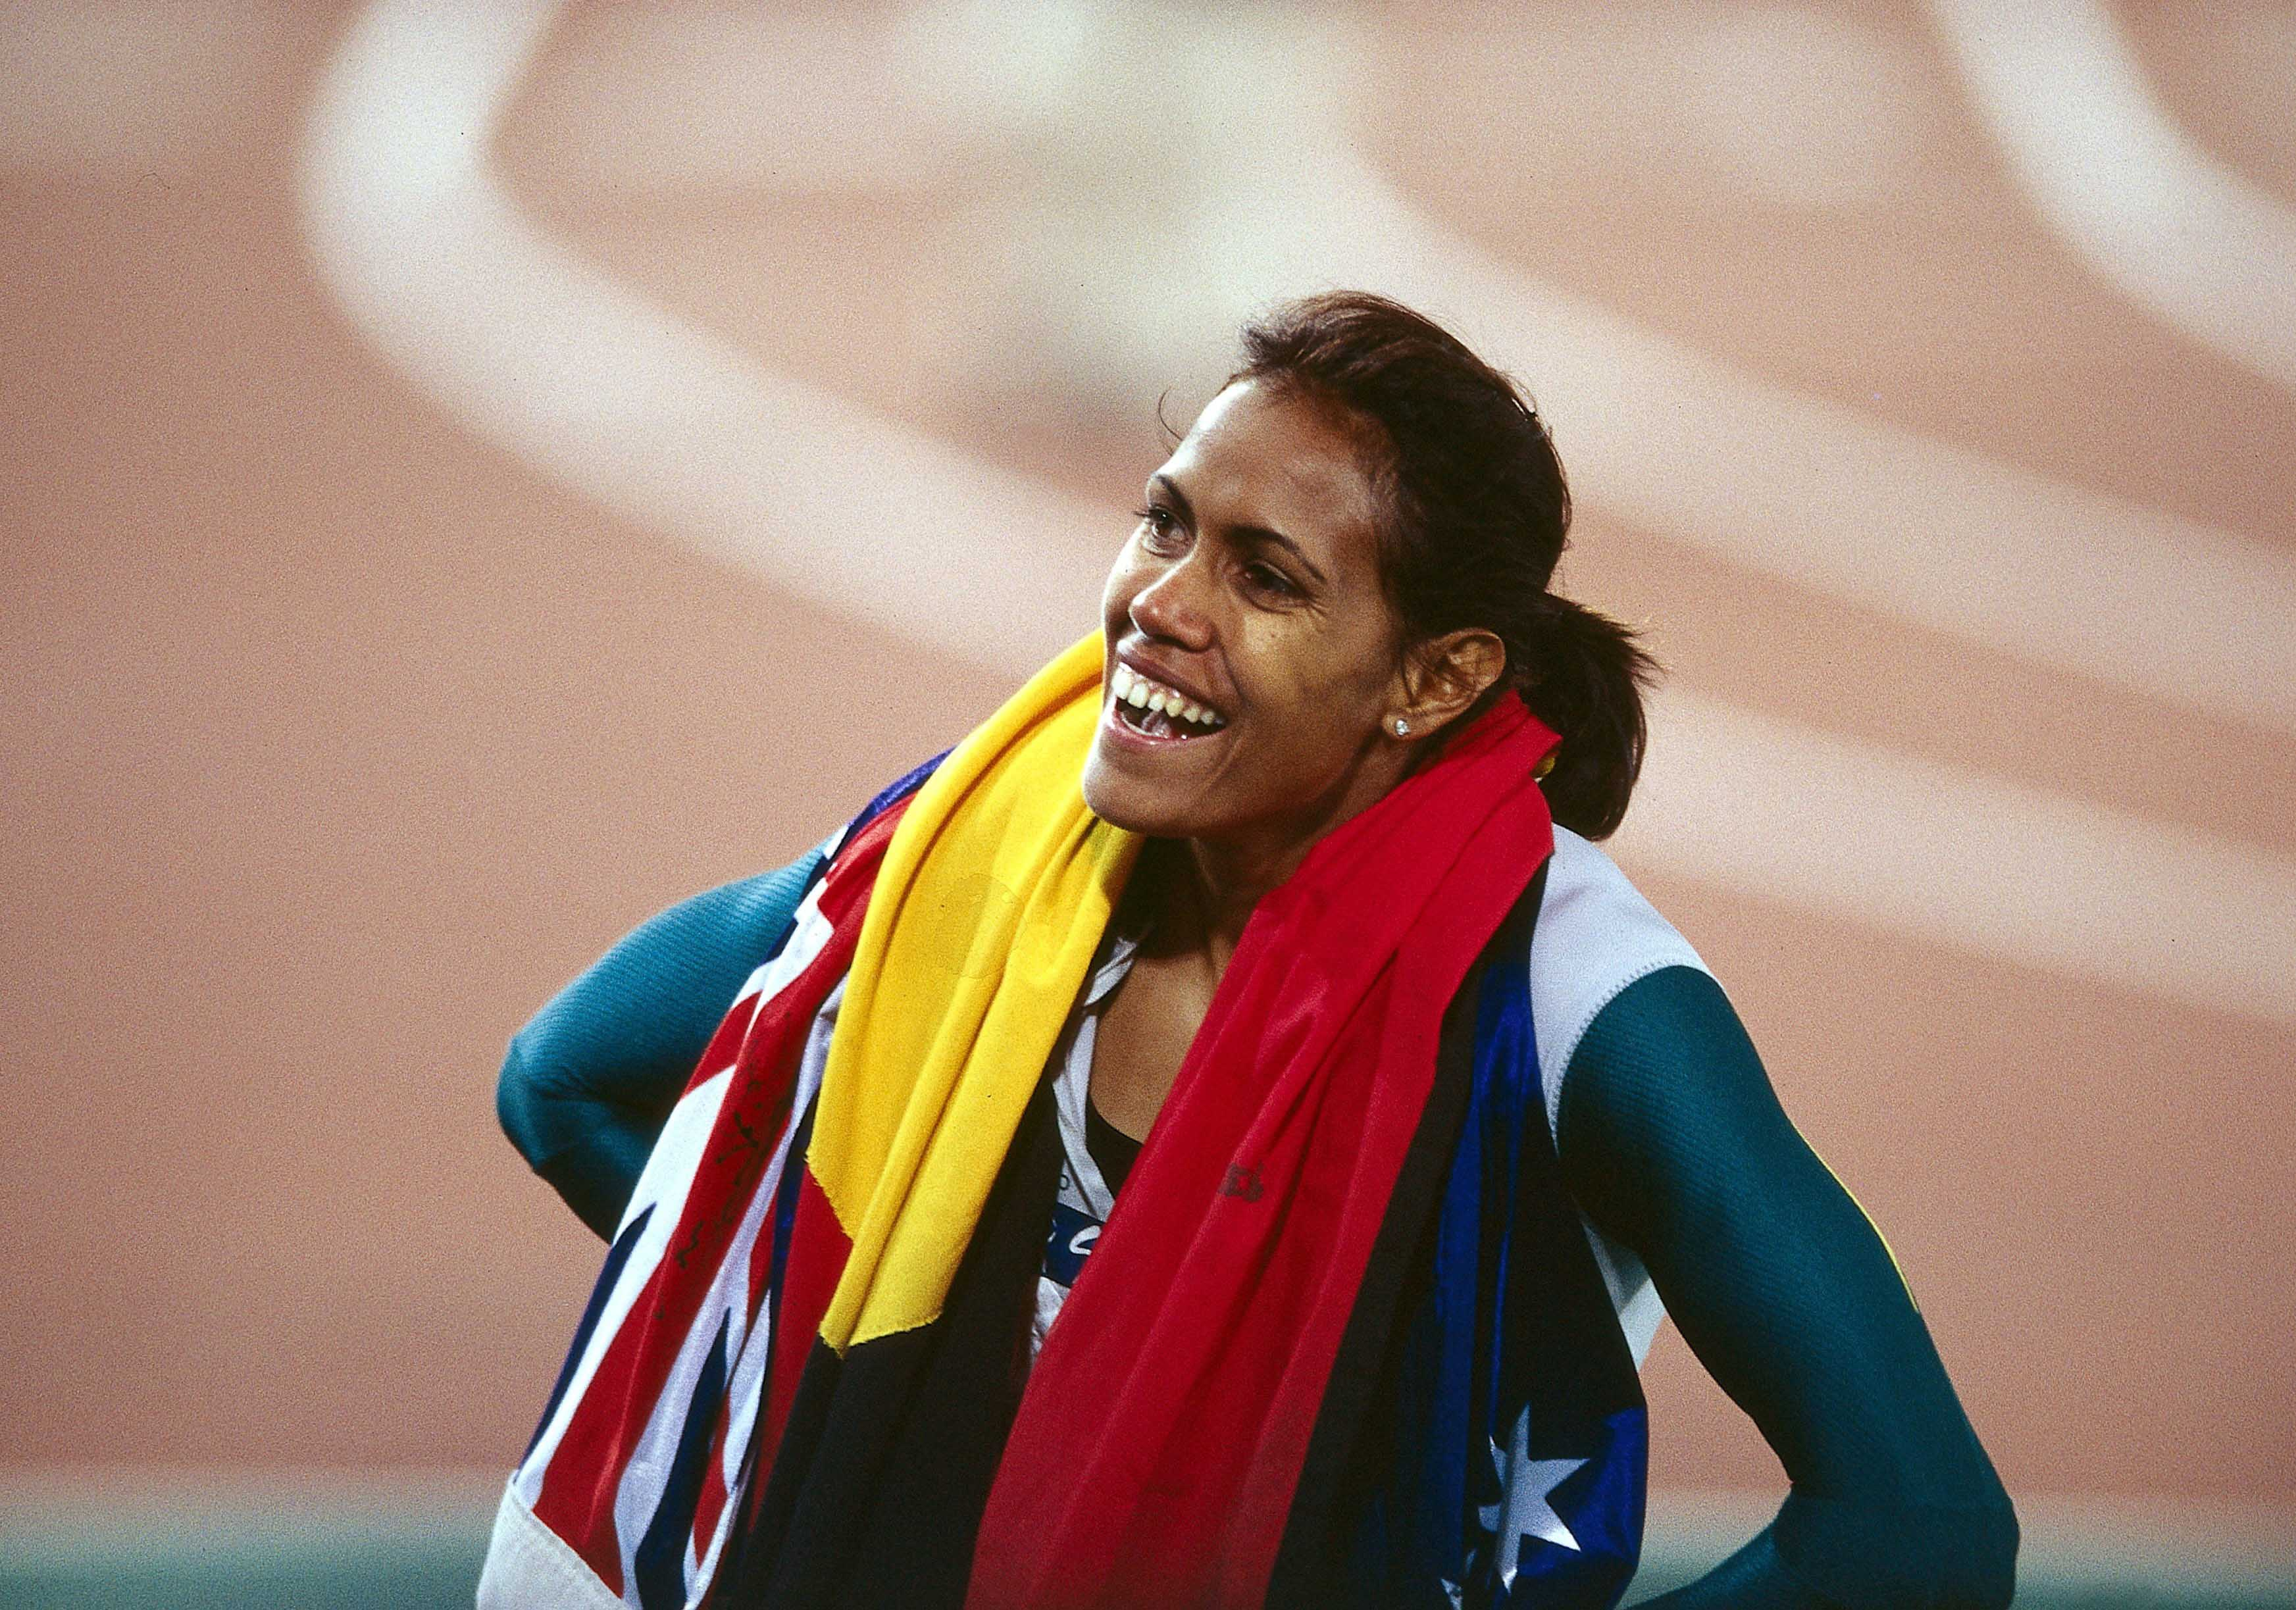 Cathy Freeman after winning the 400m final at the Sydney Olympics, with the Australian and Aboriginal flags around her shoulders, 25 September 2000